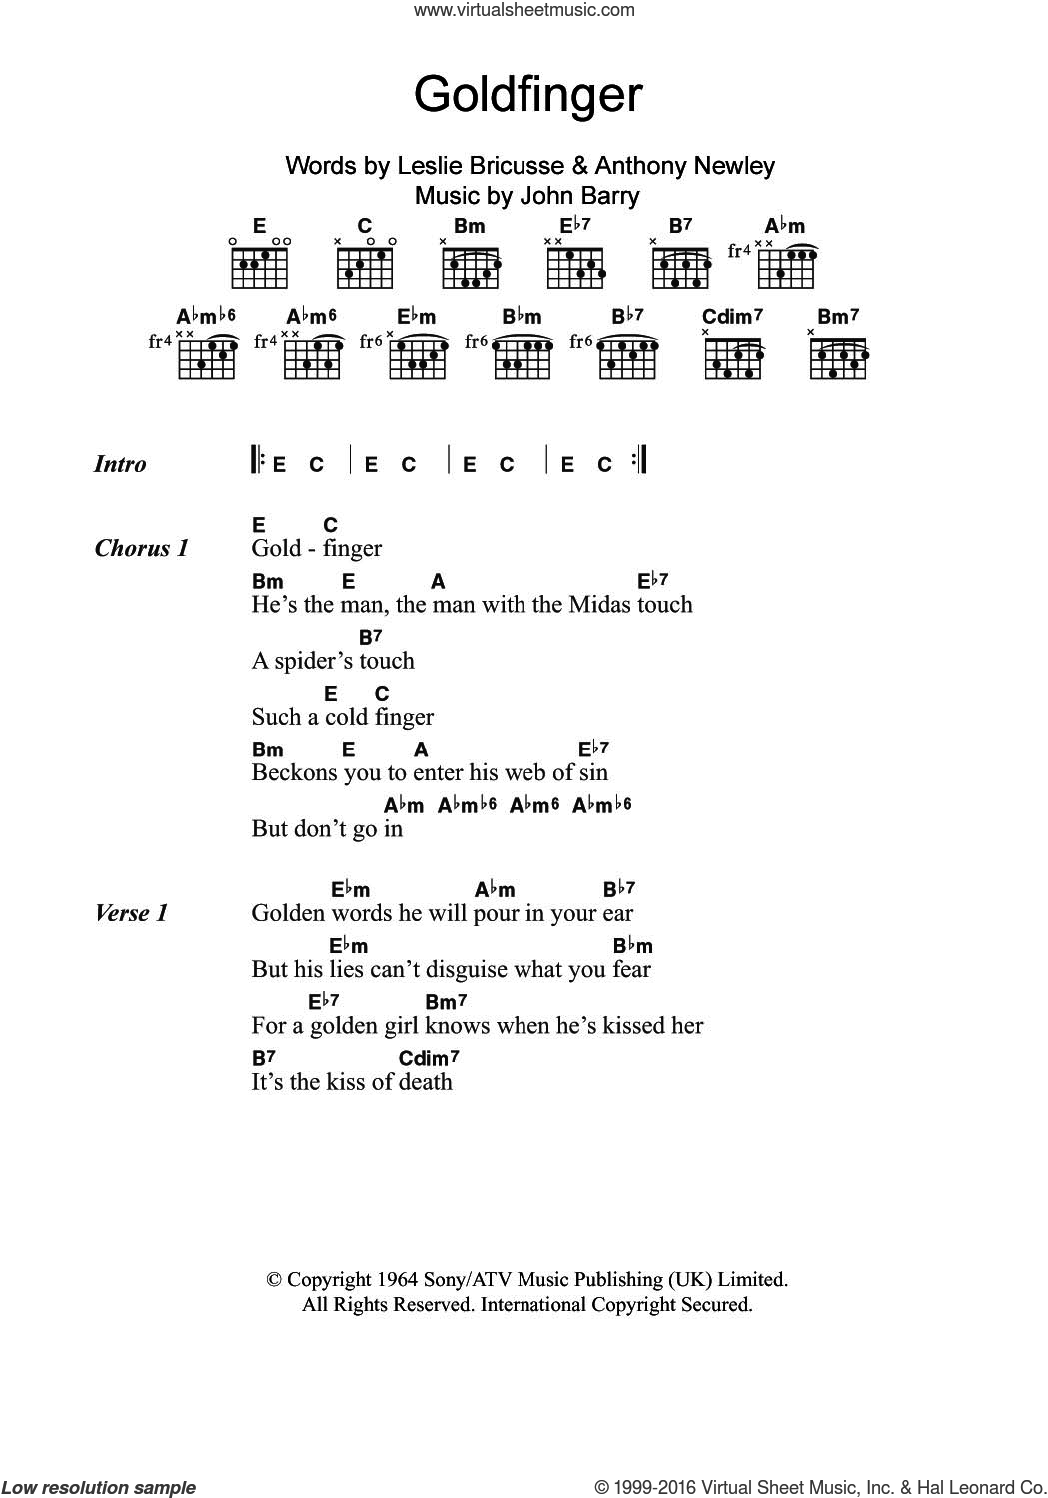 Goldfinger (from James Bond: 'Goldfinger') sheet music for guitar (chords) by Shirley Bassey, Anthony Newley, John Barry and Leslie Bricusse, intermediate skill level